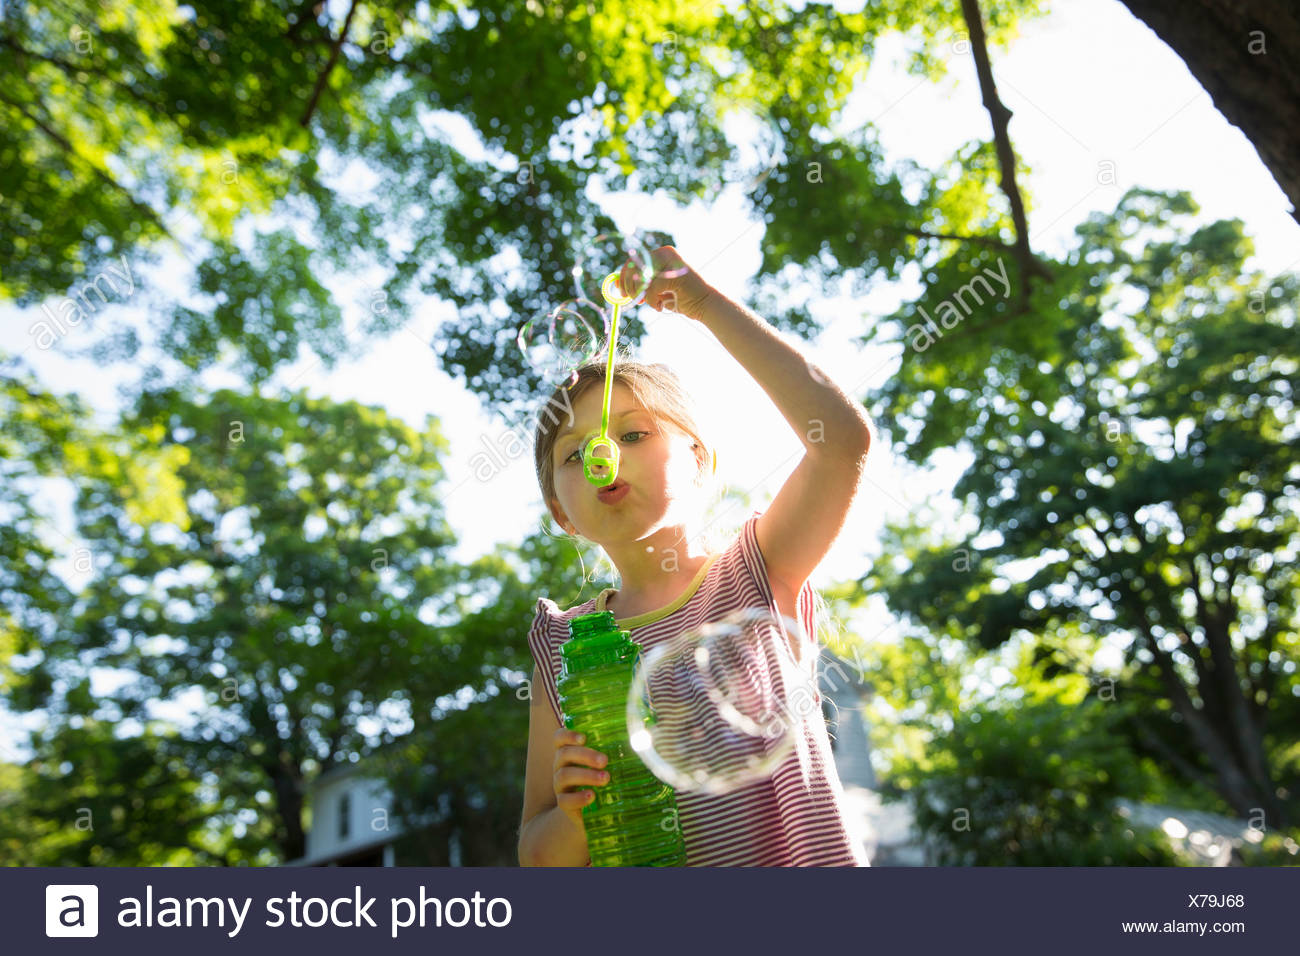 A young girl blowing bubbles in the air under the branches of a large tree. Stock Photo